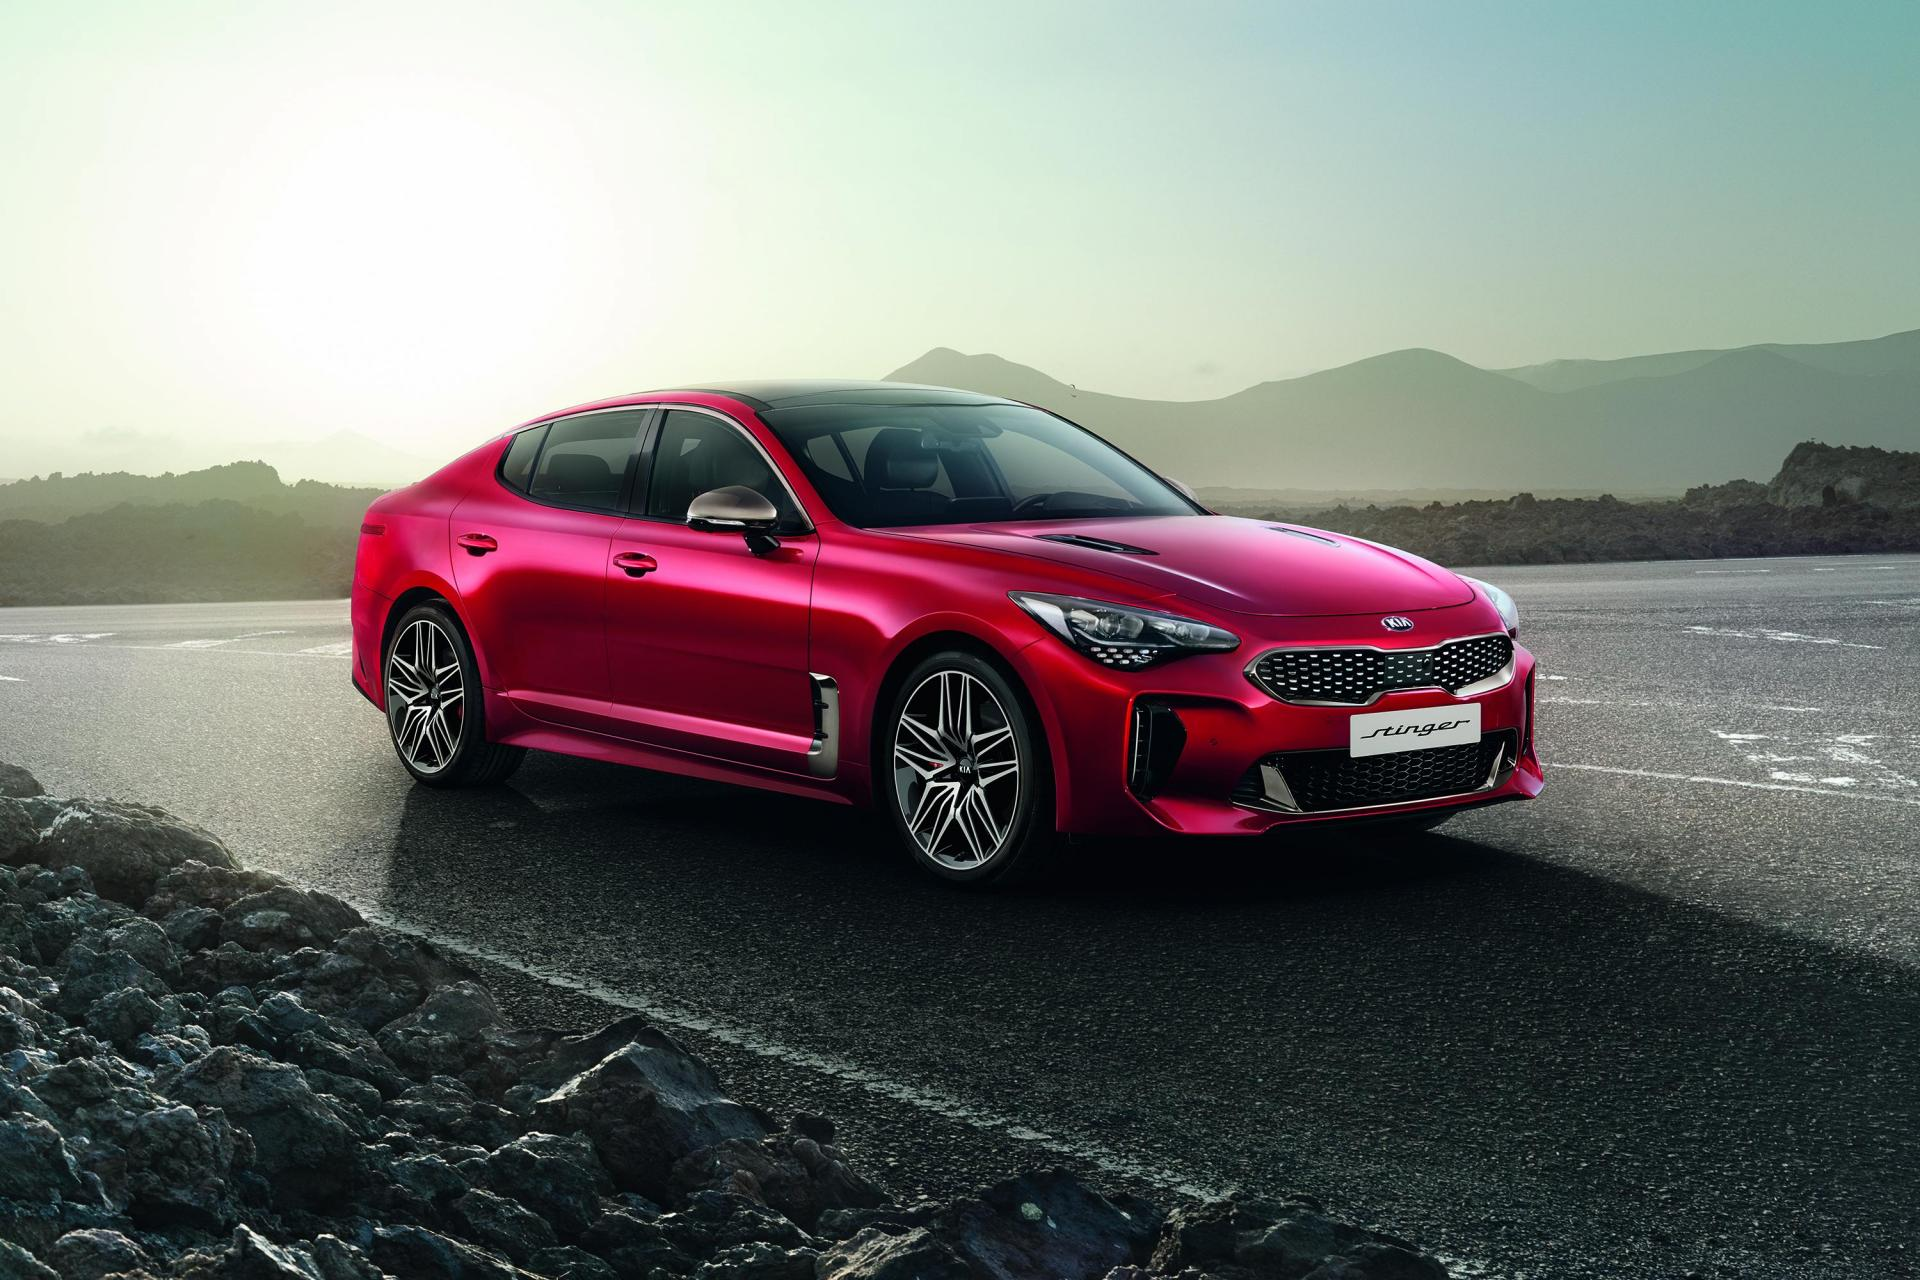 The updated Kia Stinger brings a series of new enhancements.